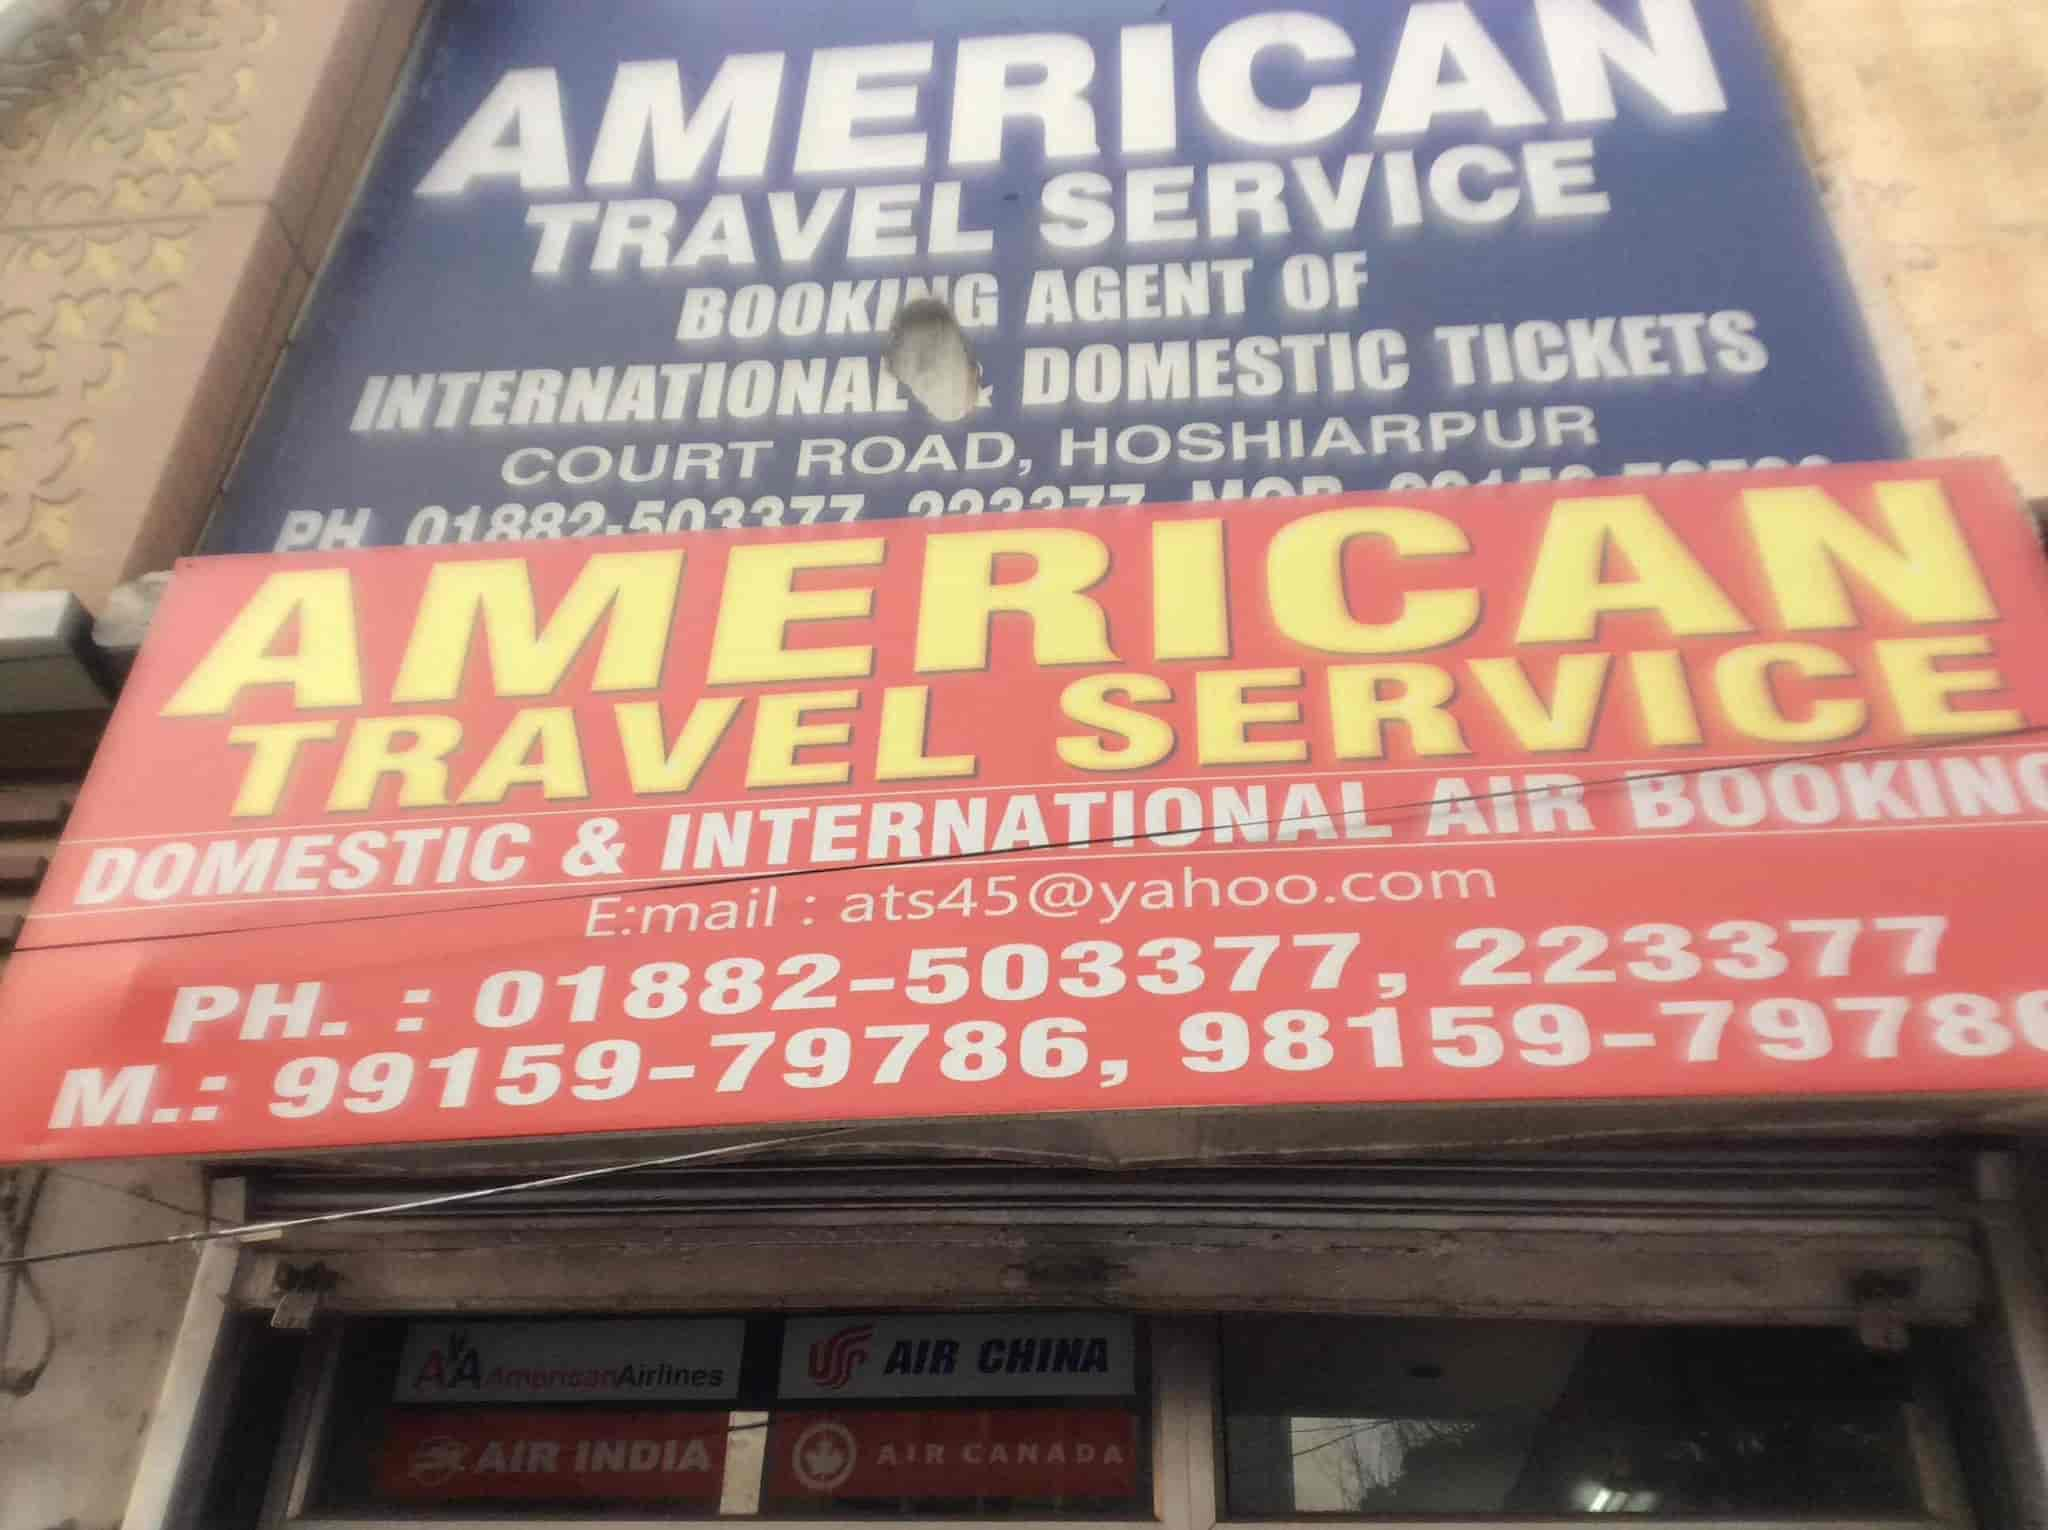 American Travel Service, Hoshiarpur Ho - Travel Agents in